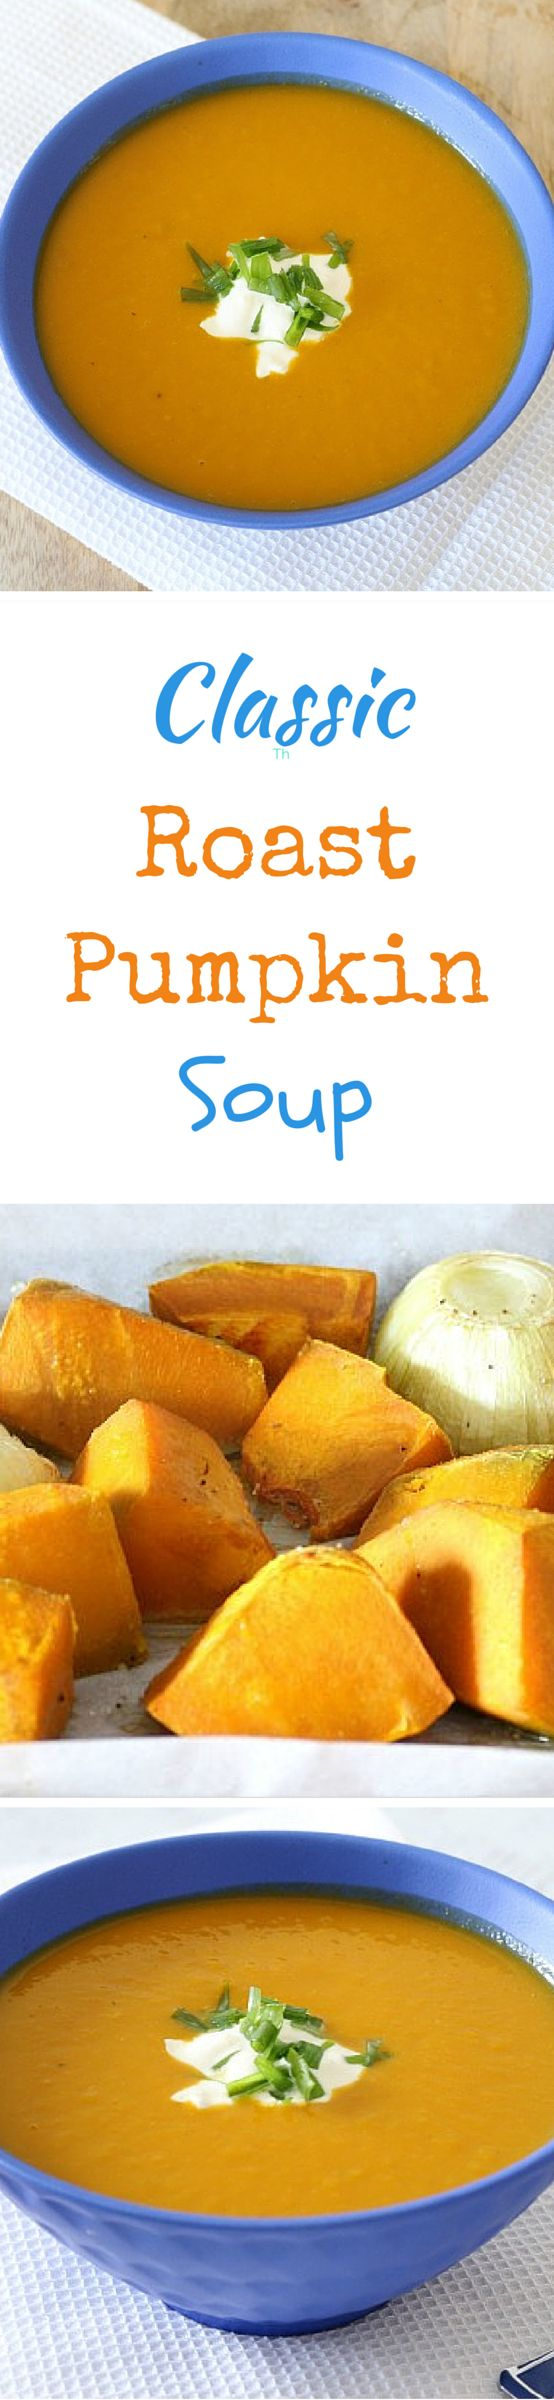 This soup is a family favourite of ours. I love how quick and simple it is to whip up and it tastes AMAZING!!